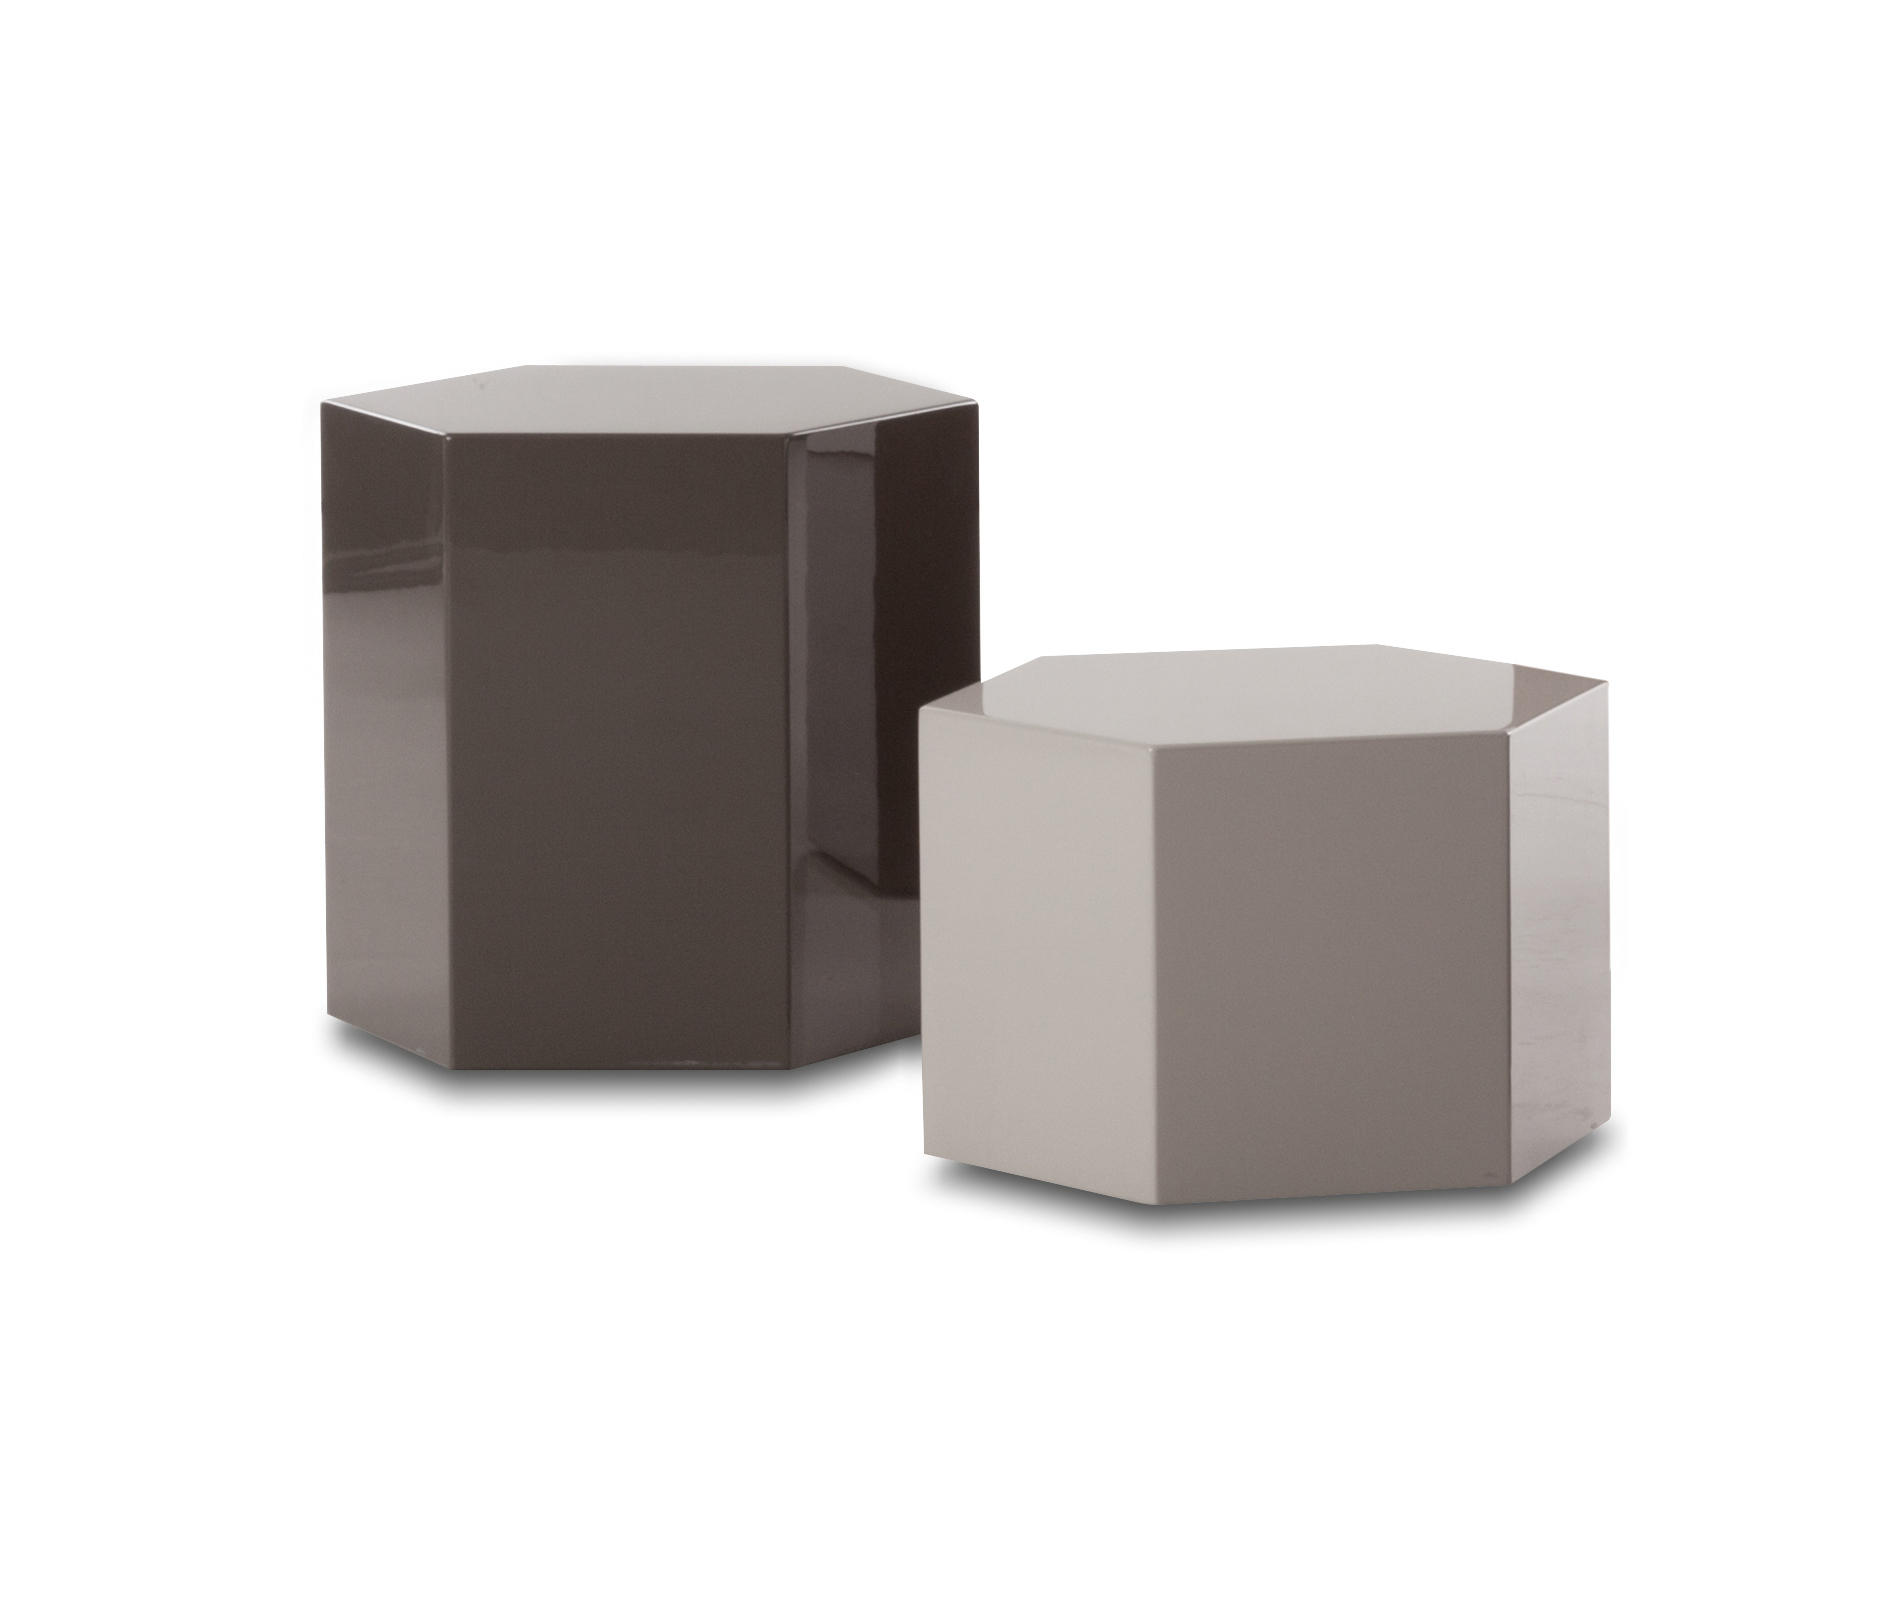 aeron outdoor accent tables by minotti side tables - Outdoor Accent Tables